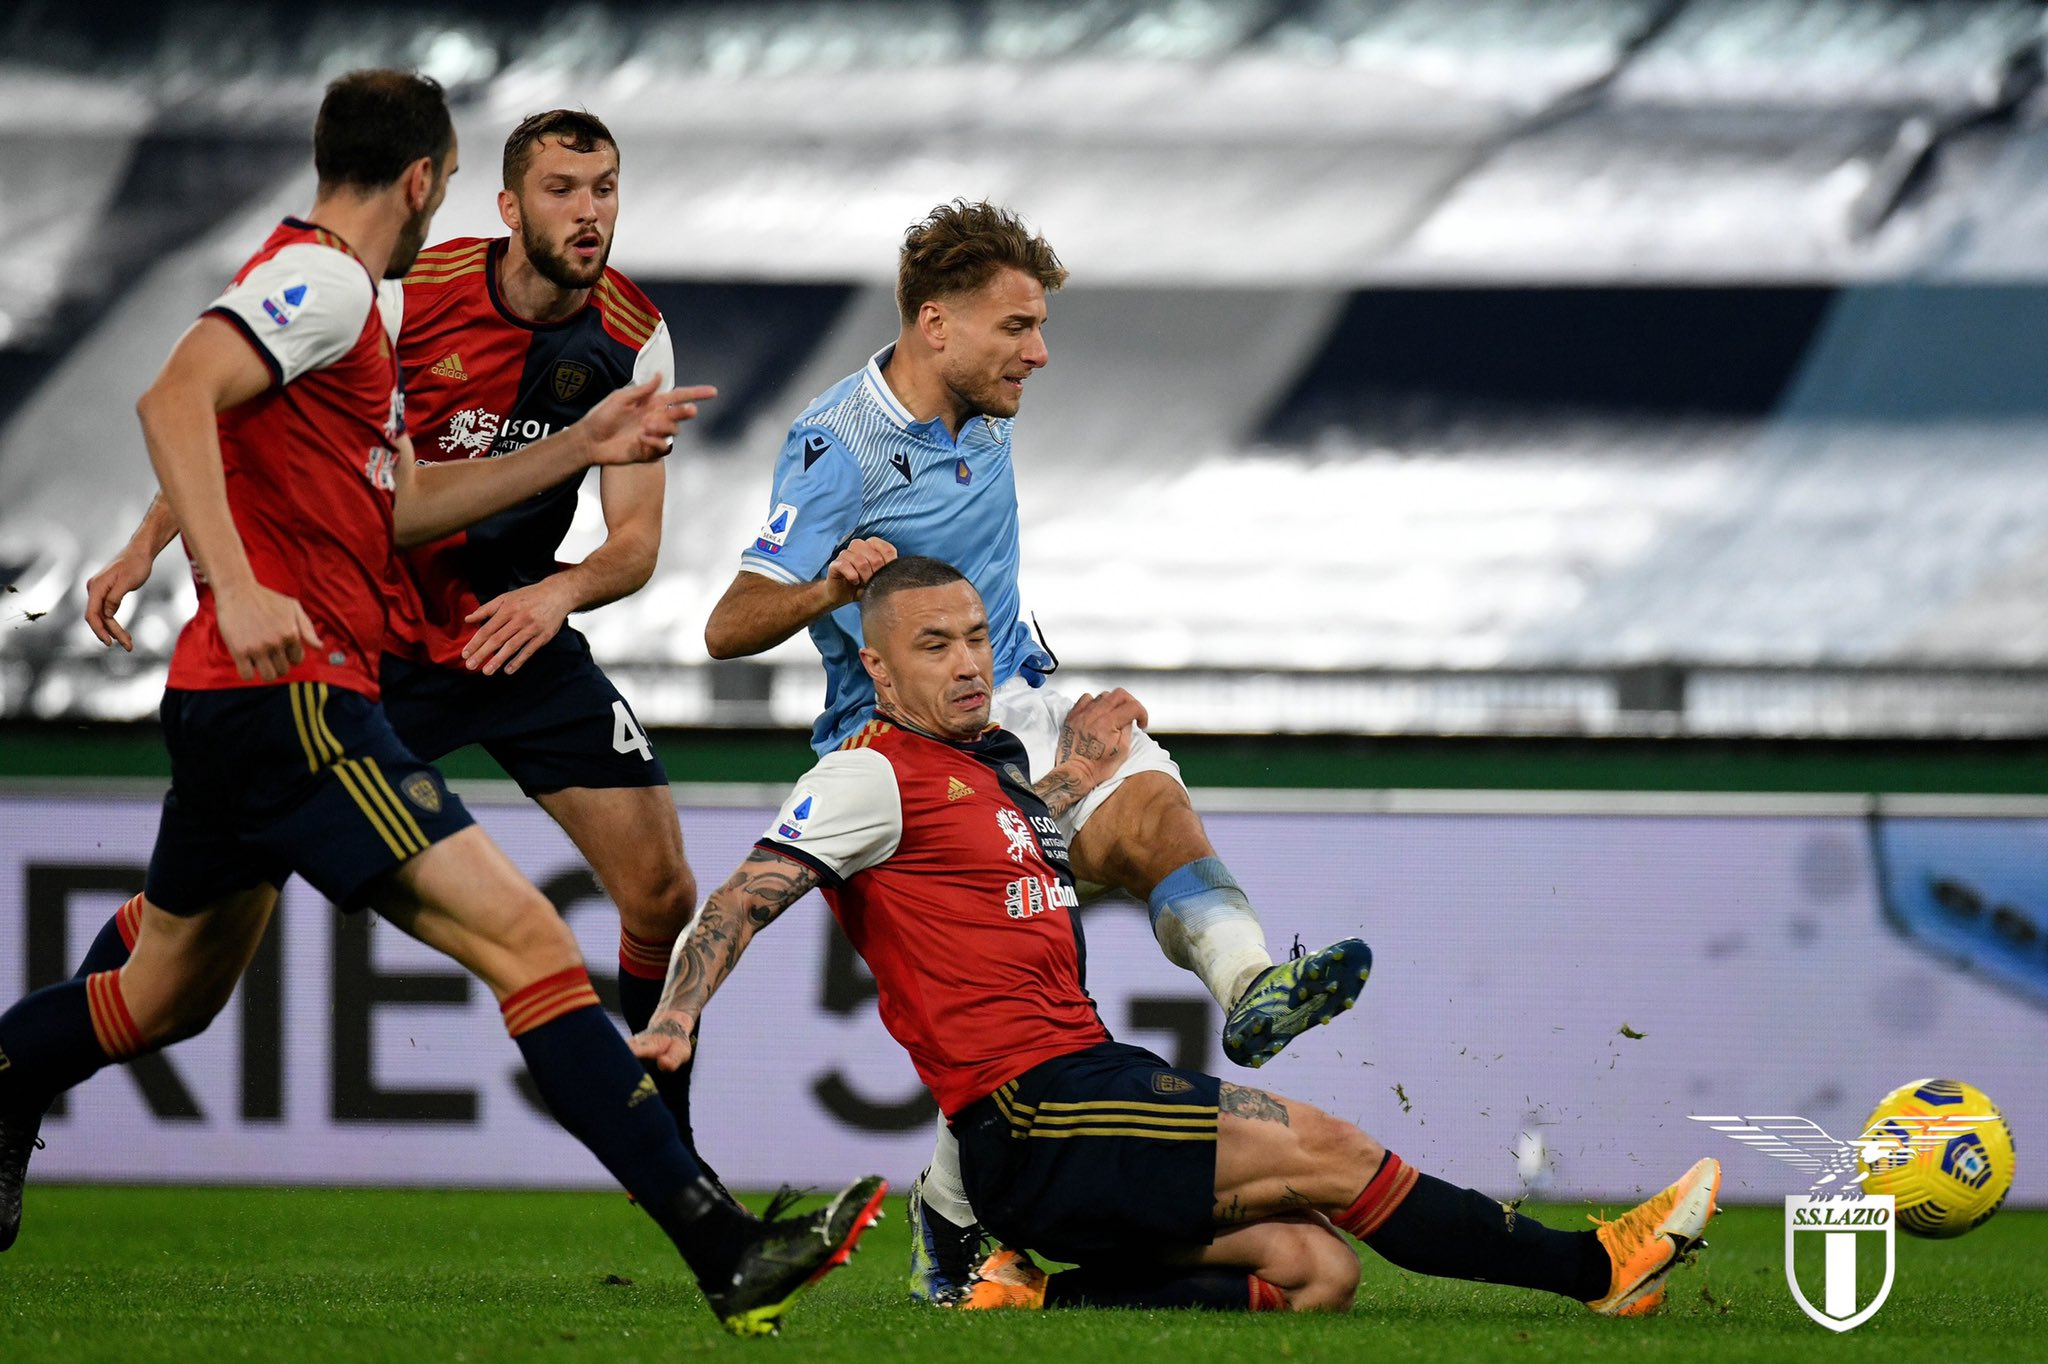 UCL: ITALIAN FOOTBALL IN SERIOUS TROUBLE